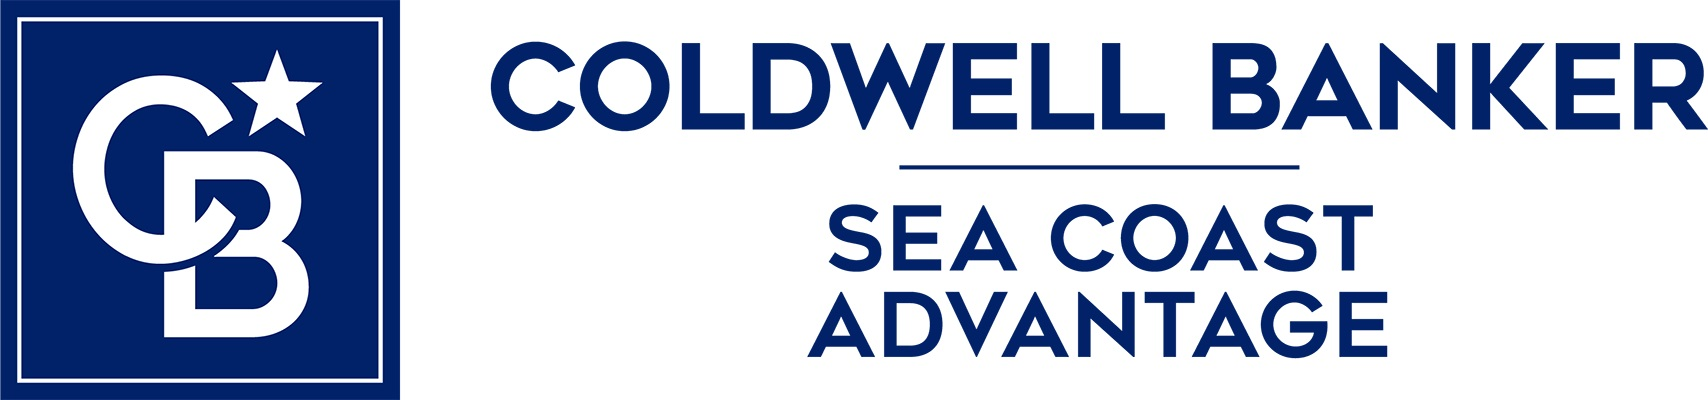 Tammy Poole - Coldwell Banker Sea Coast Advantage Logo